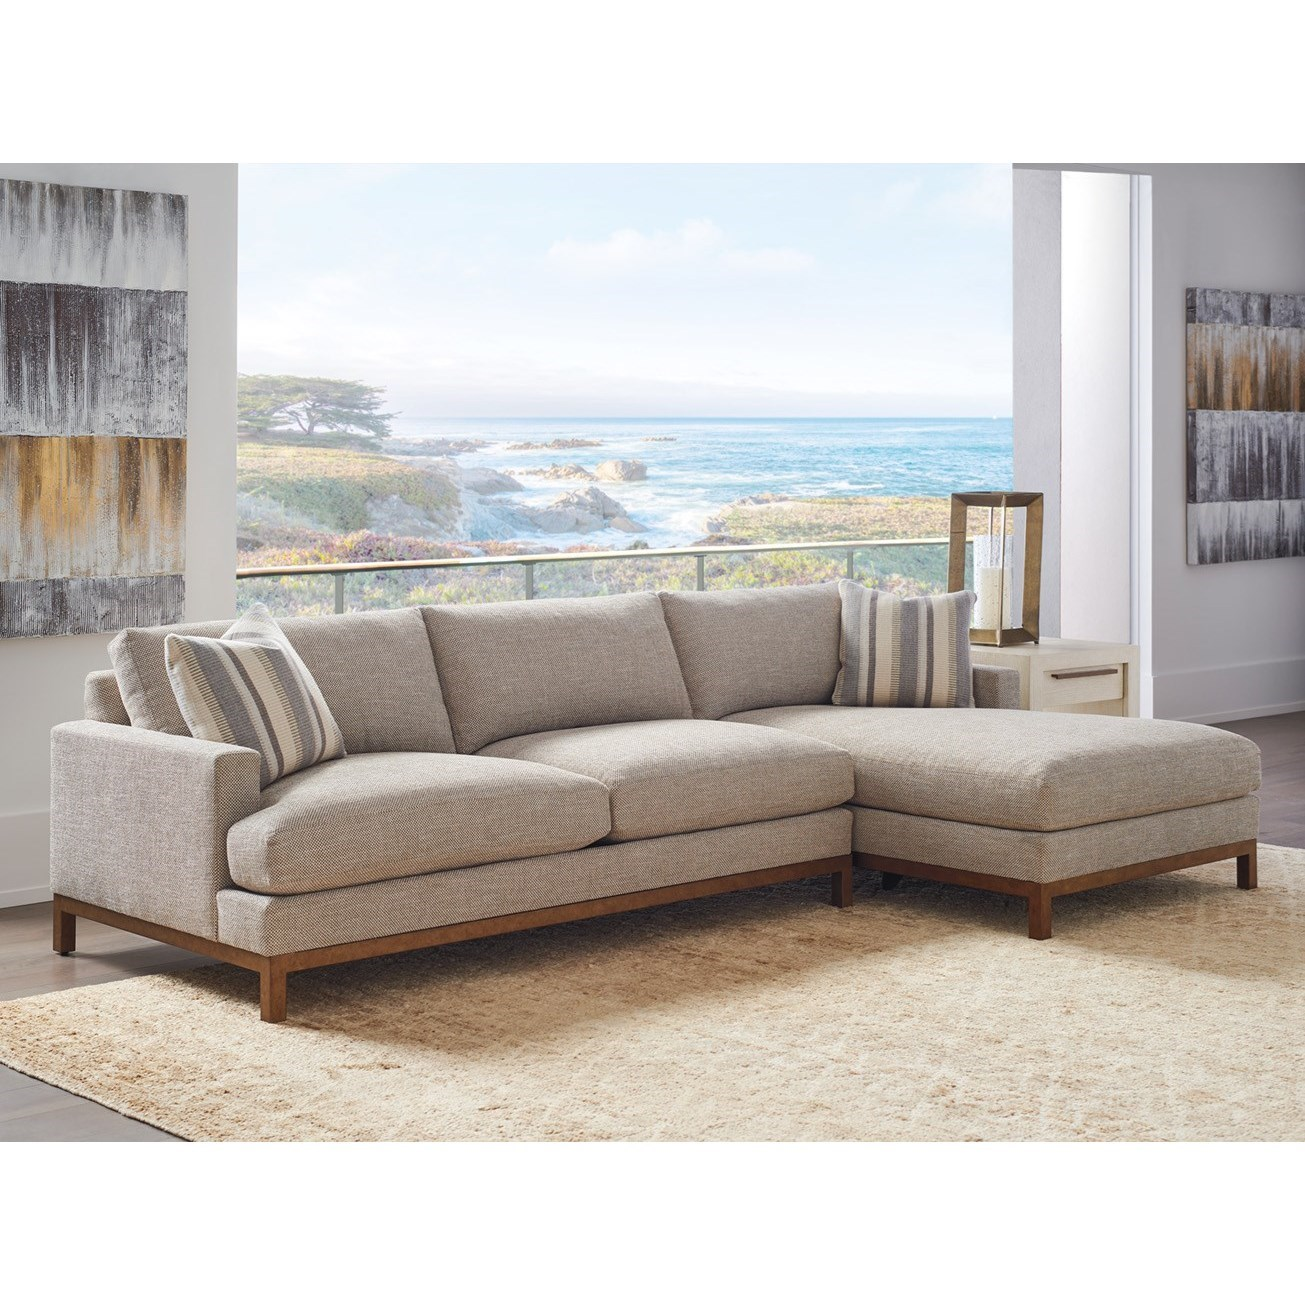 Barclay Butera Upholstery 2-Pc Sectional w/ Brass Base & RAF Chaise by Barclay Butera at Baer's Furniture